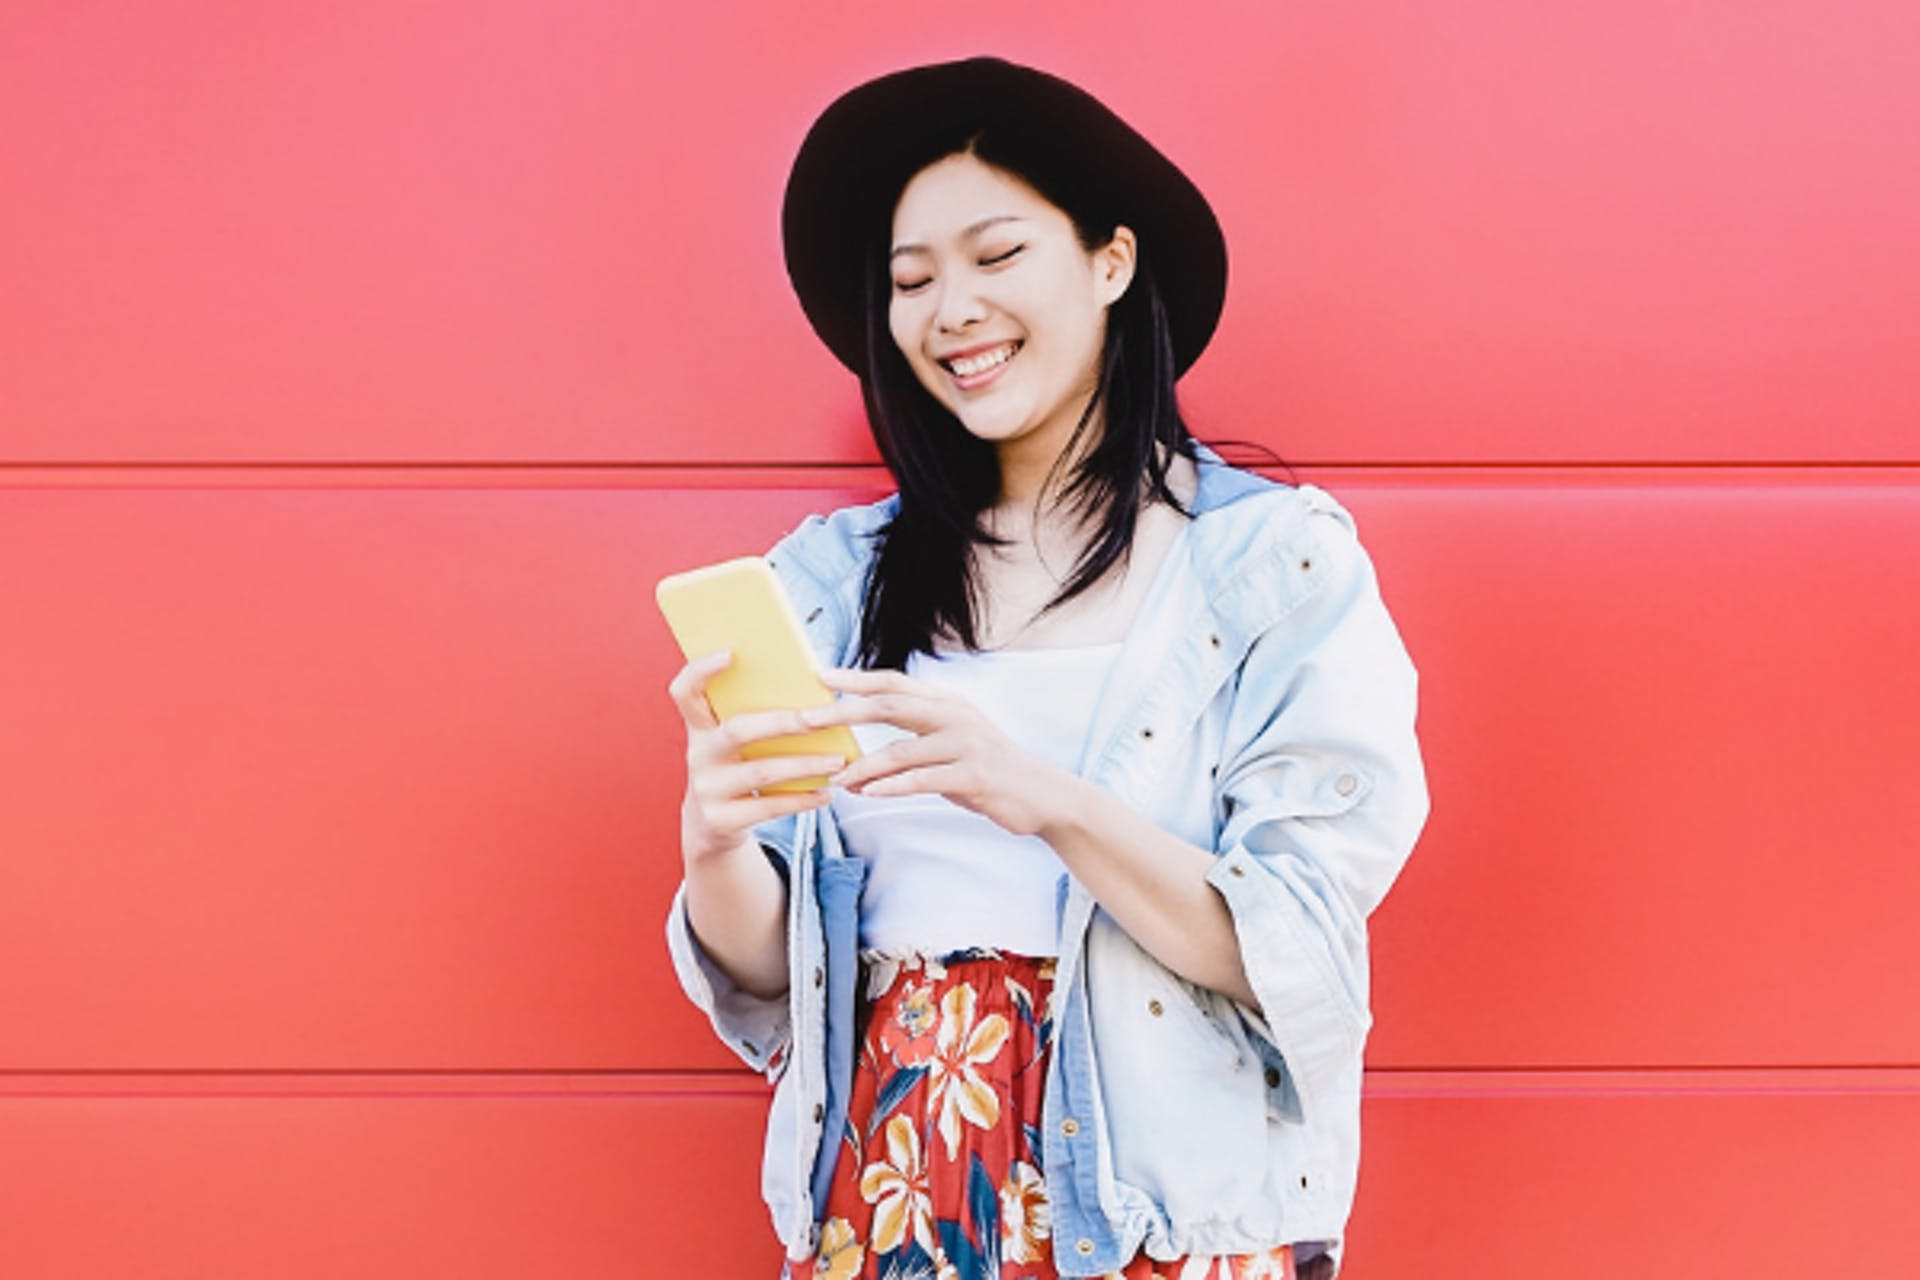 asian woman with smartphone influencer in front of red wall